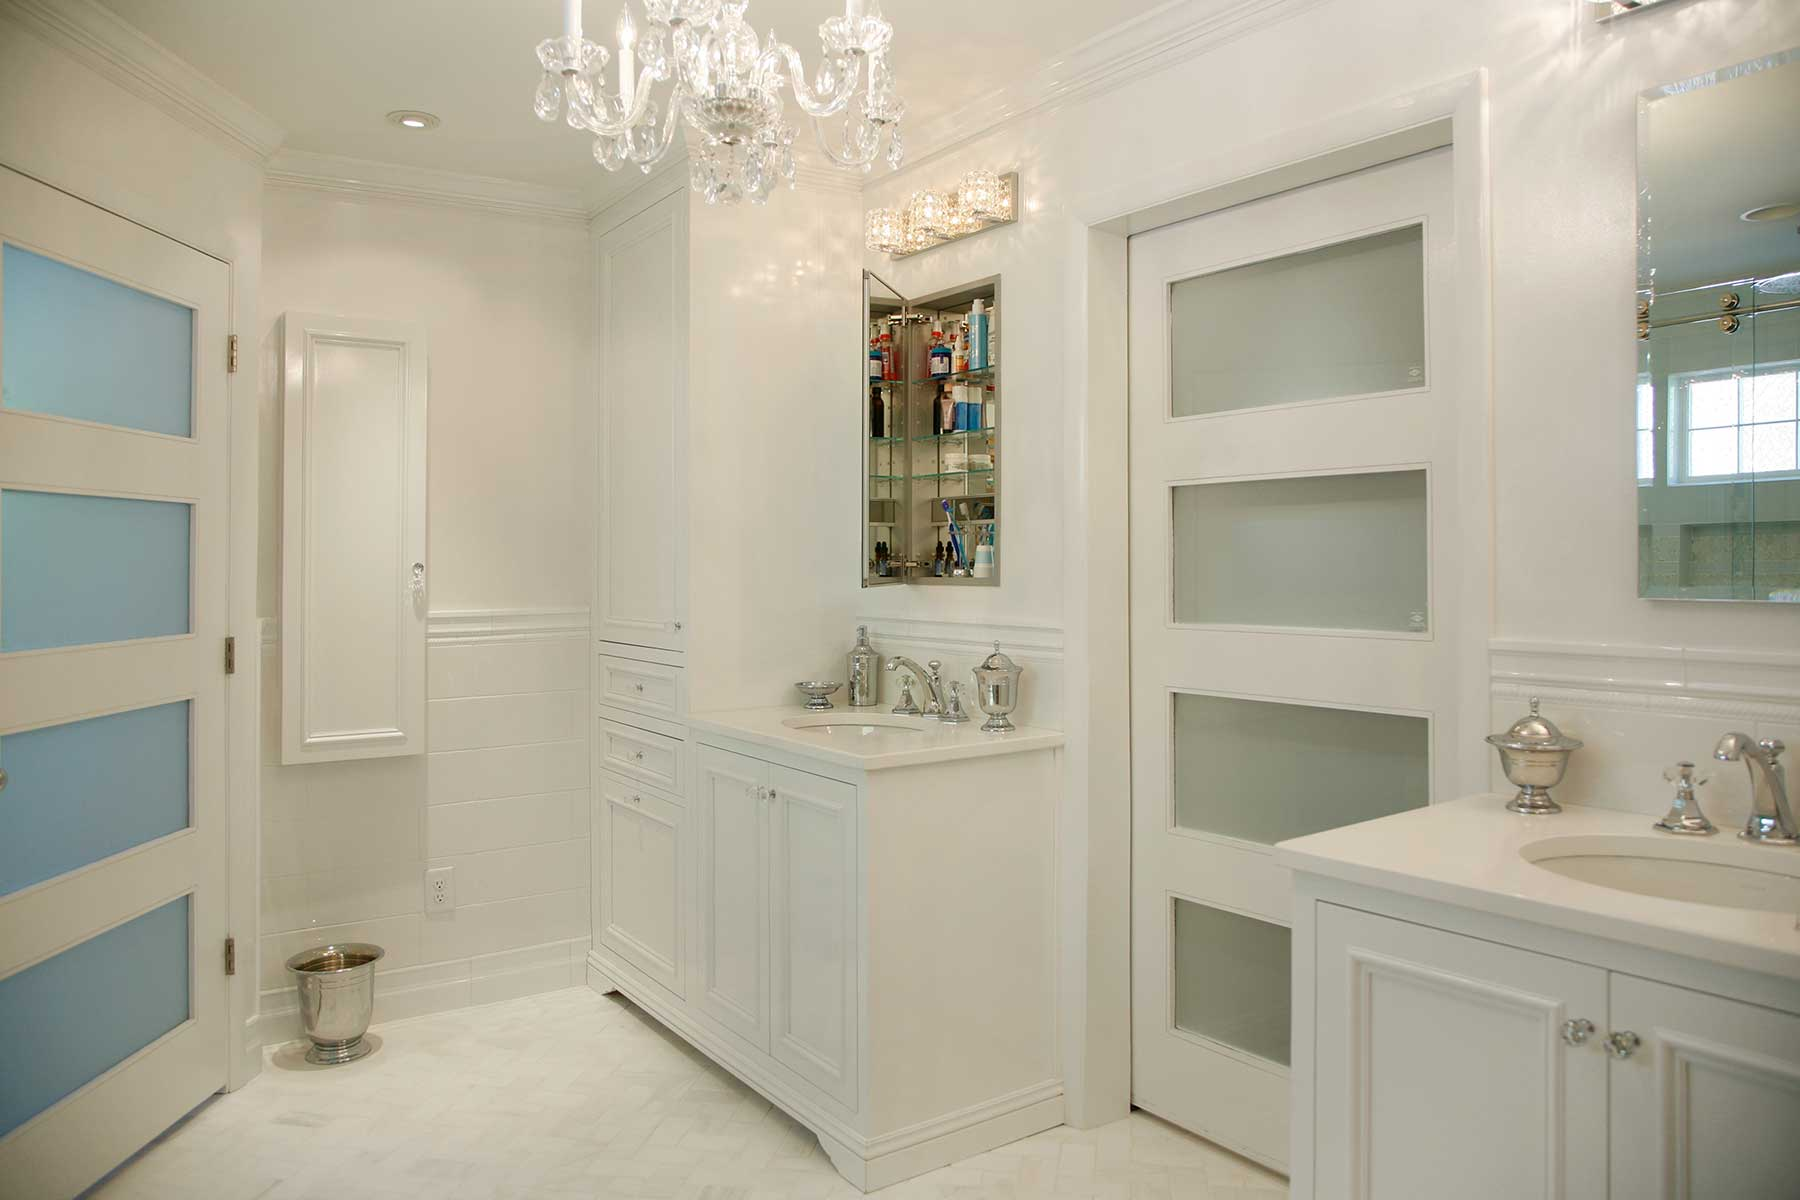 Newly remodeled bathroom vanities